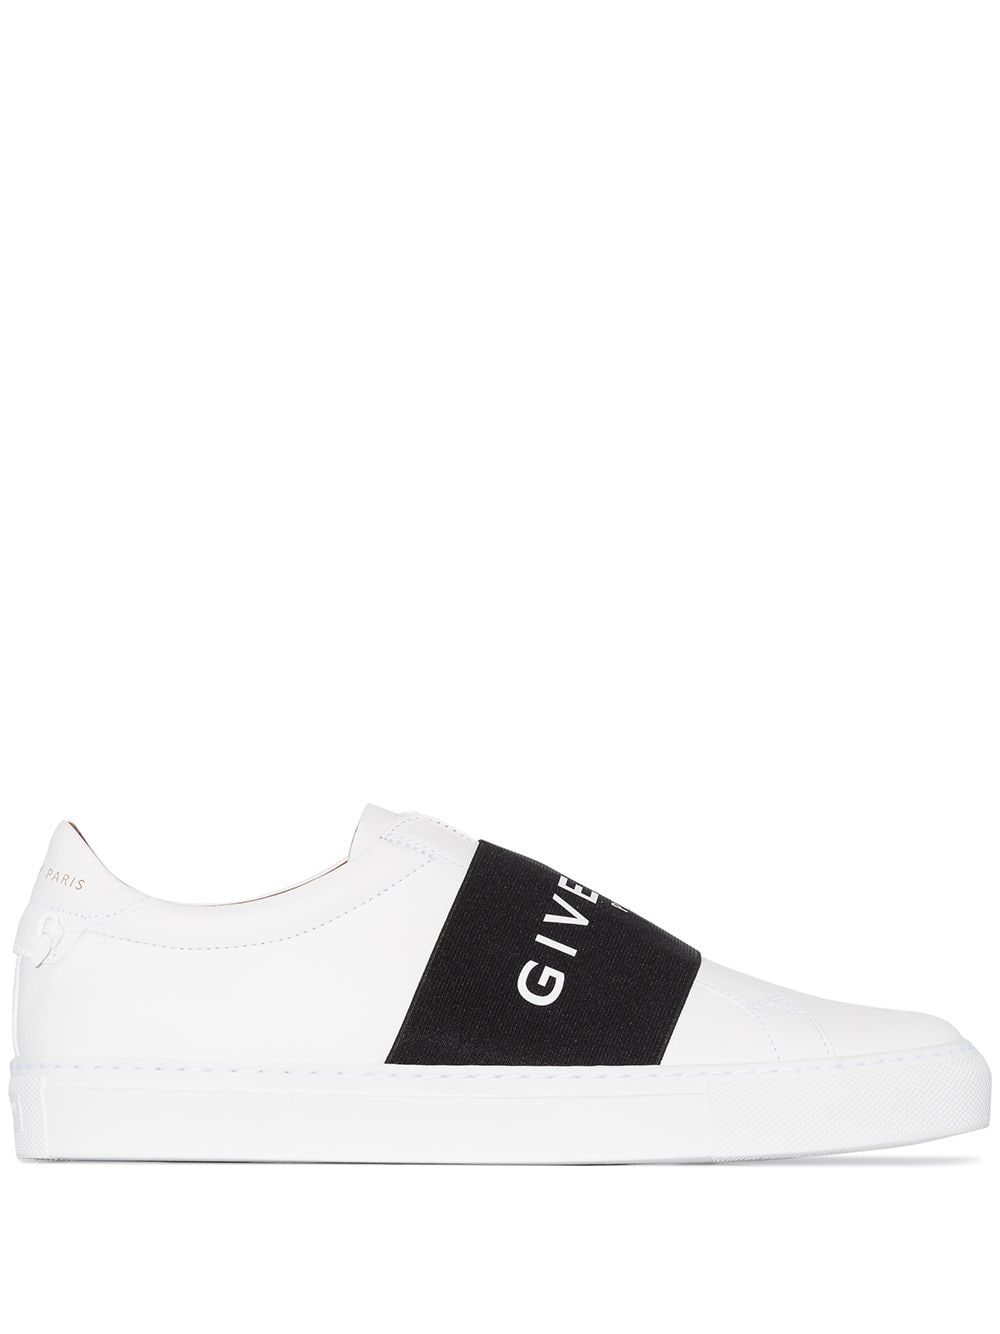 white calf leather round toe slip with black lettering logo band GIVENCHY |  | BE0005E0DD116